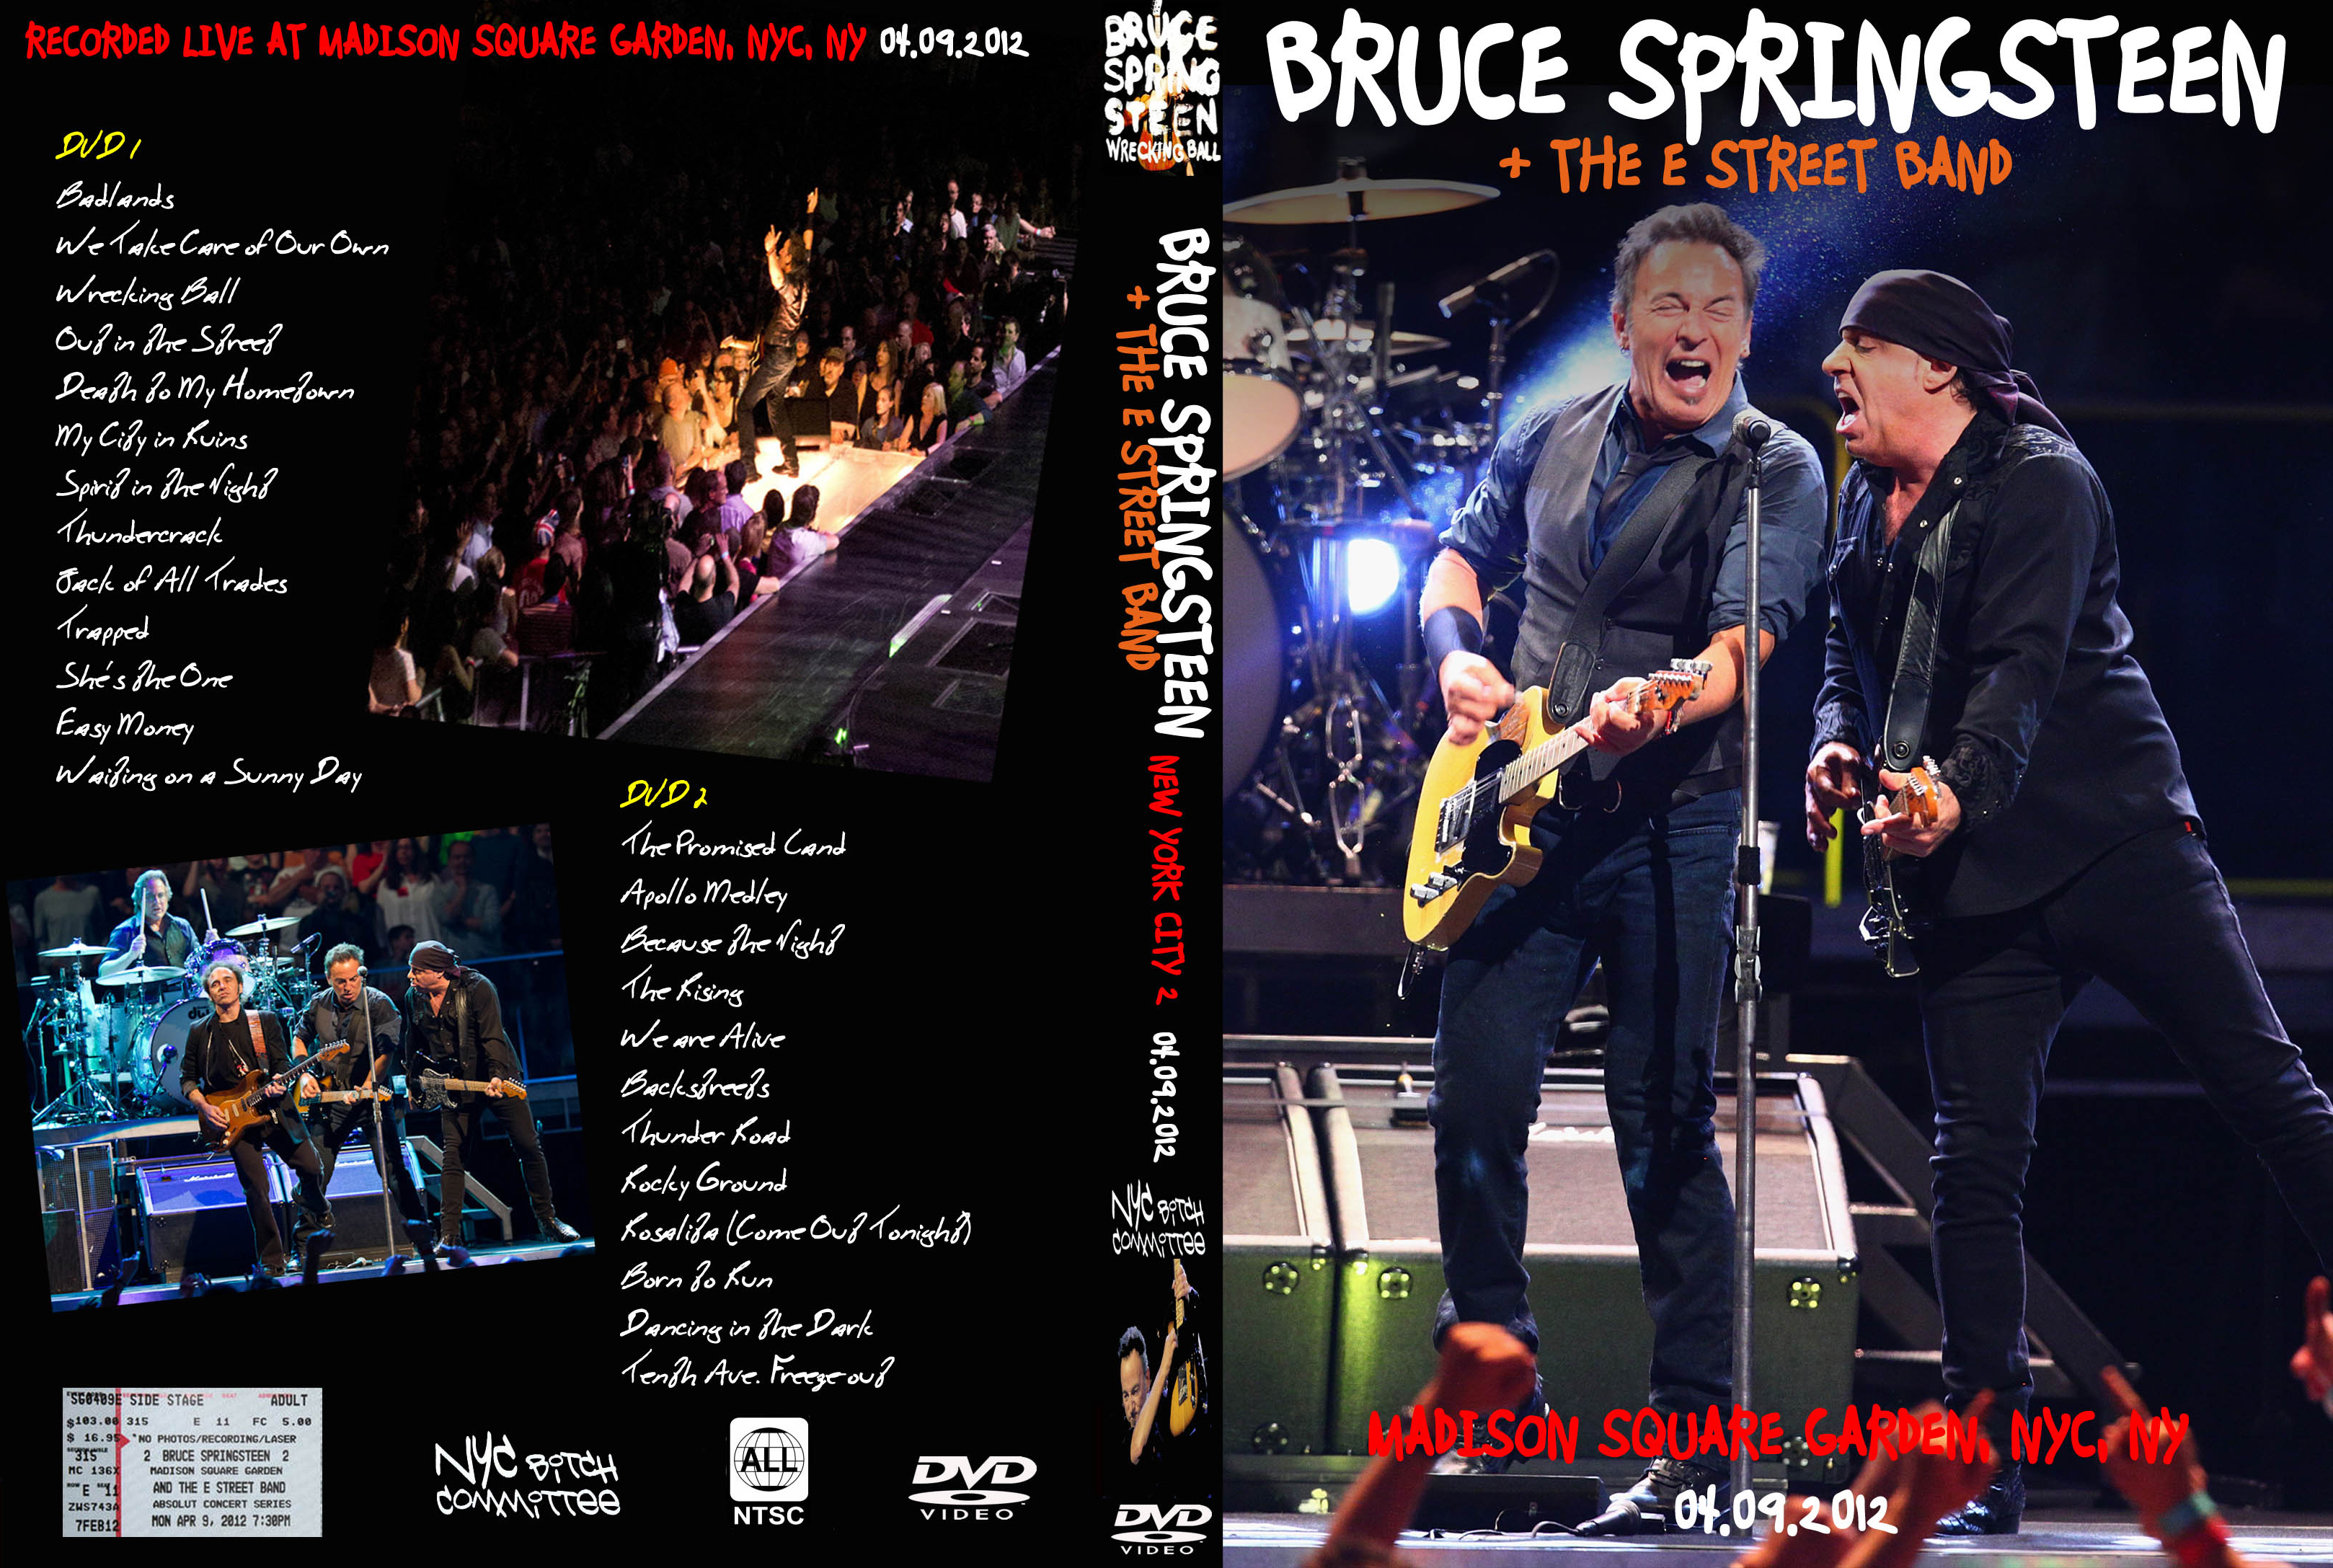 09 Apr 2012 Springsteen Dvds